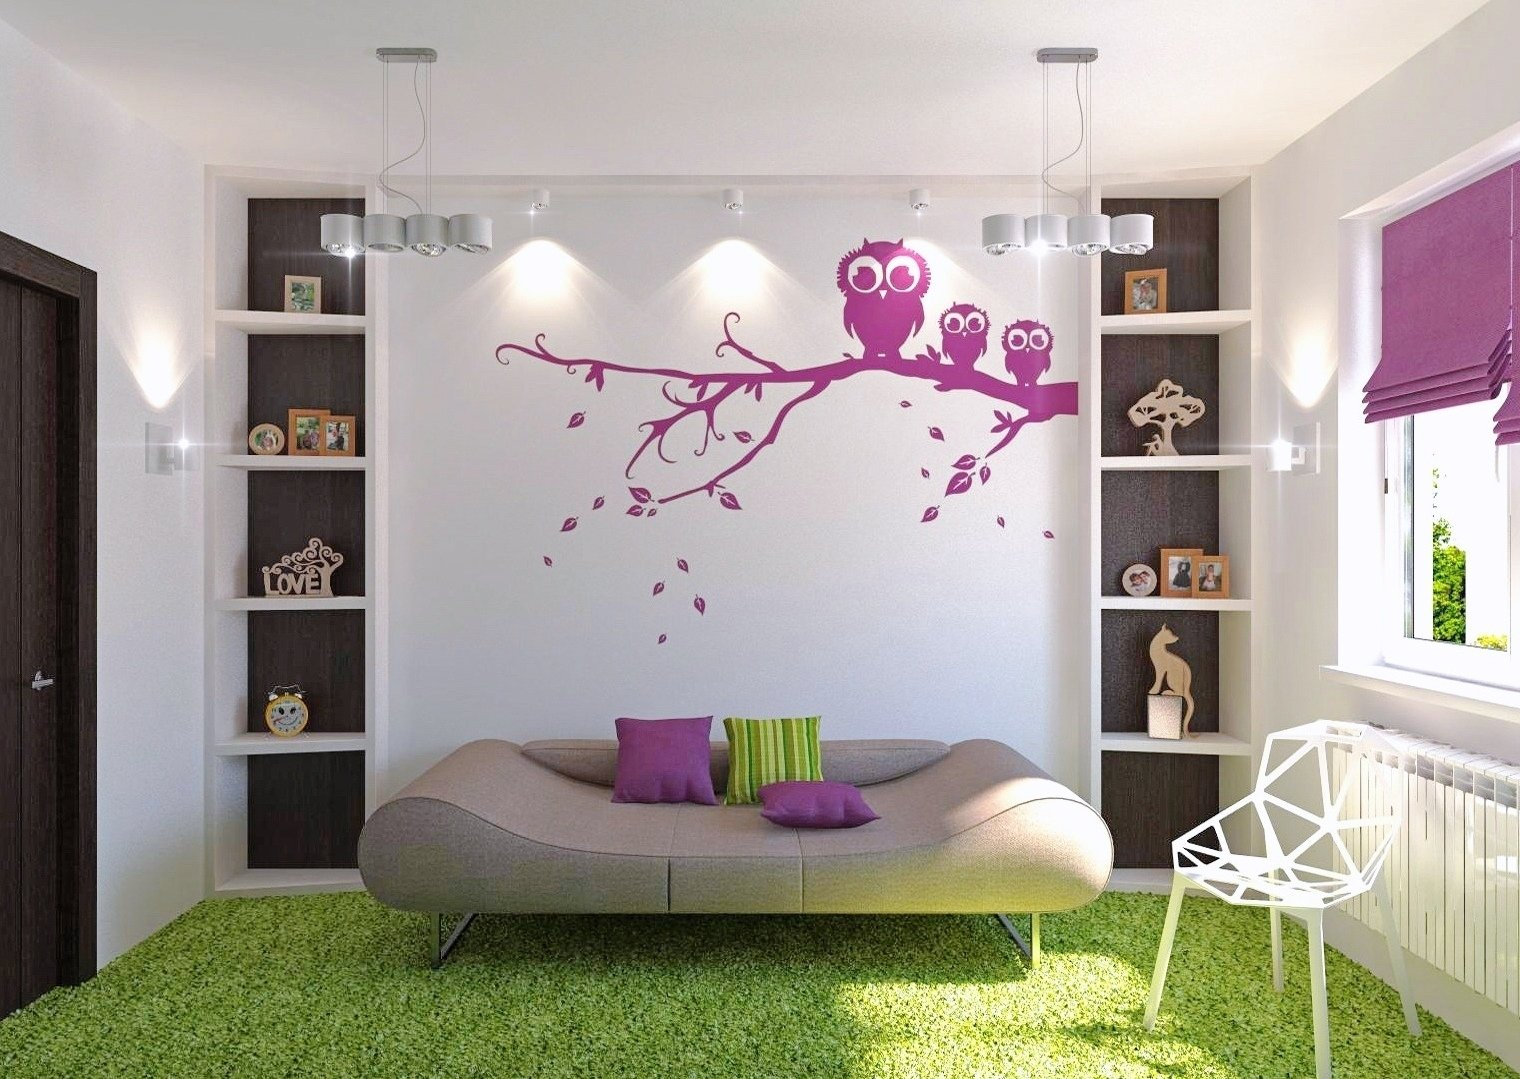 10 Fabulous Bedroom Ideas For Young Adults portrait of bedroom ideas for young adults bedroom design 2021